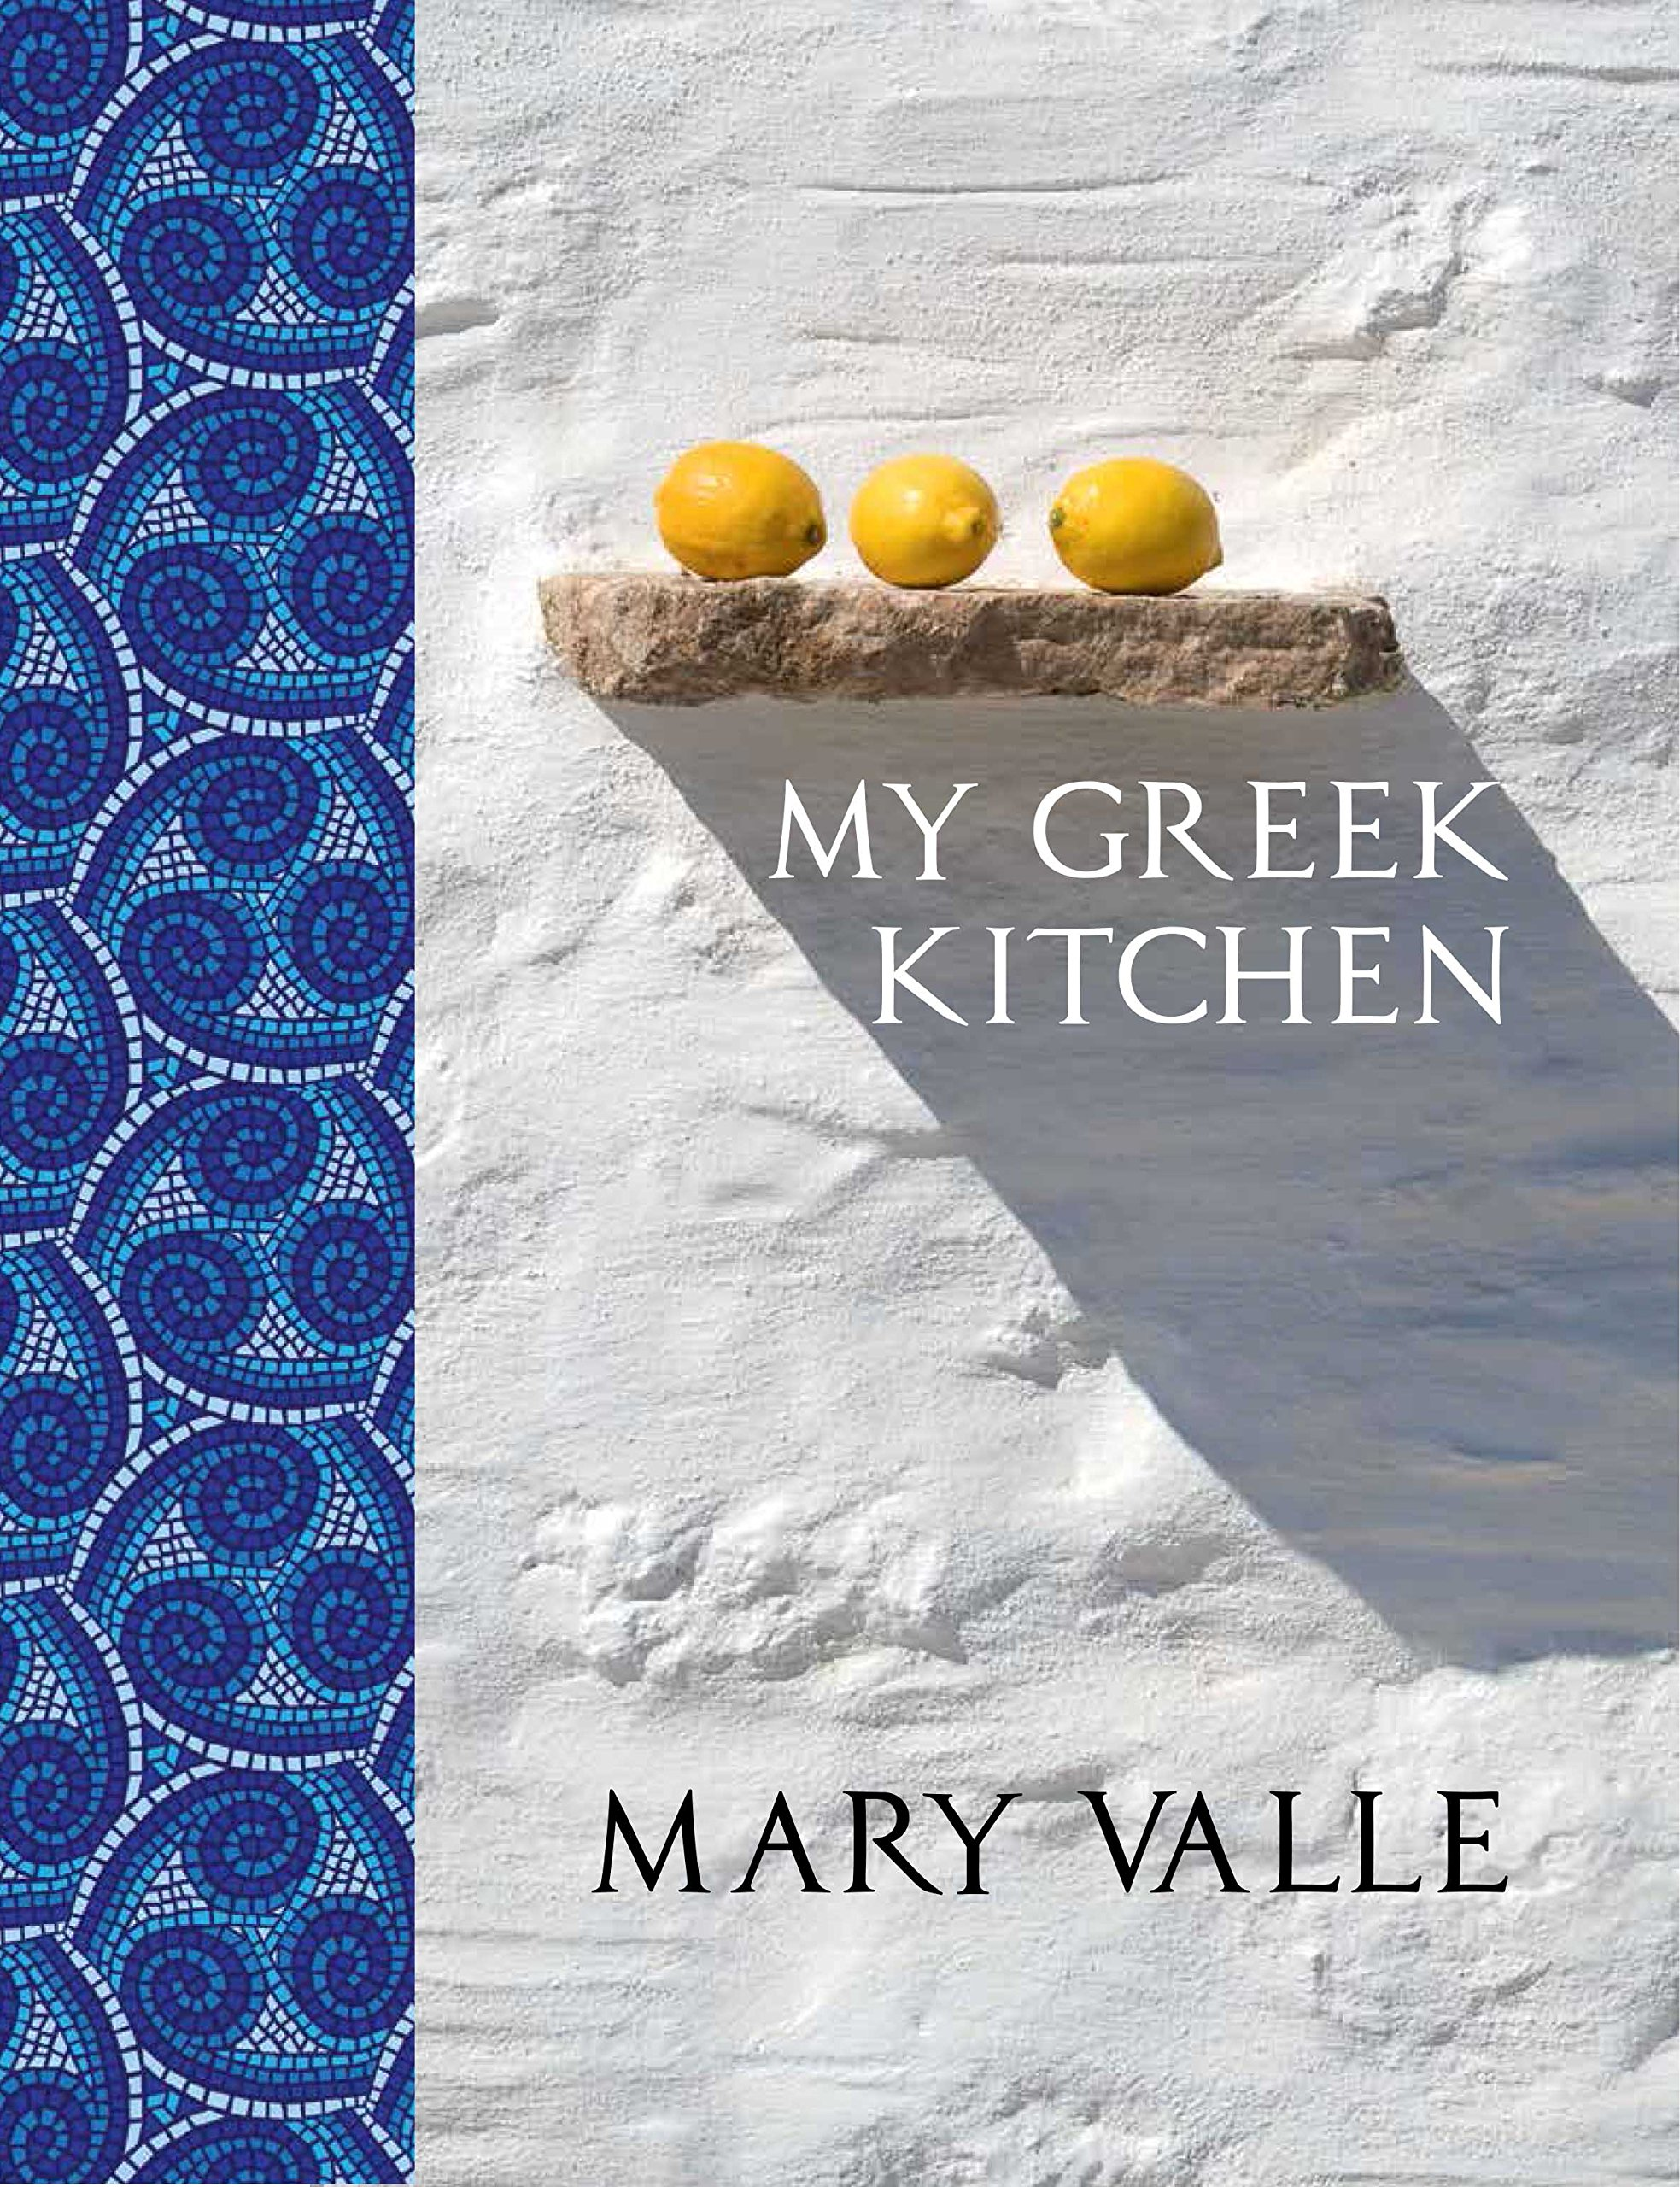 My Greek Kitchen: Mary Valle: 9781742576107: Amazon.com: Books